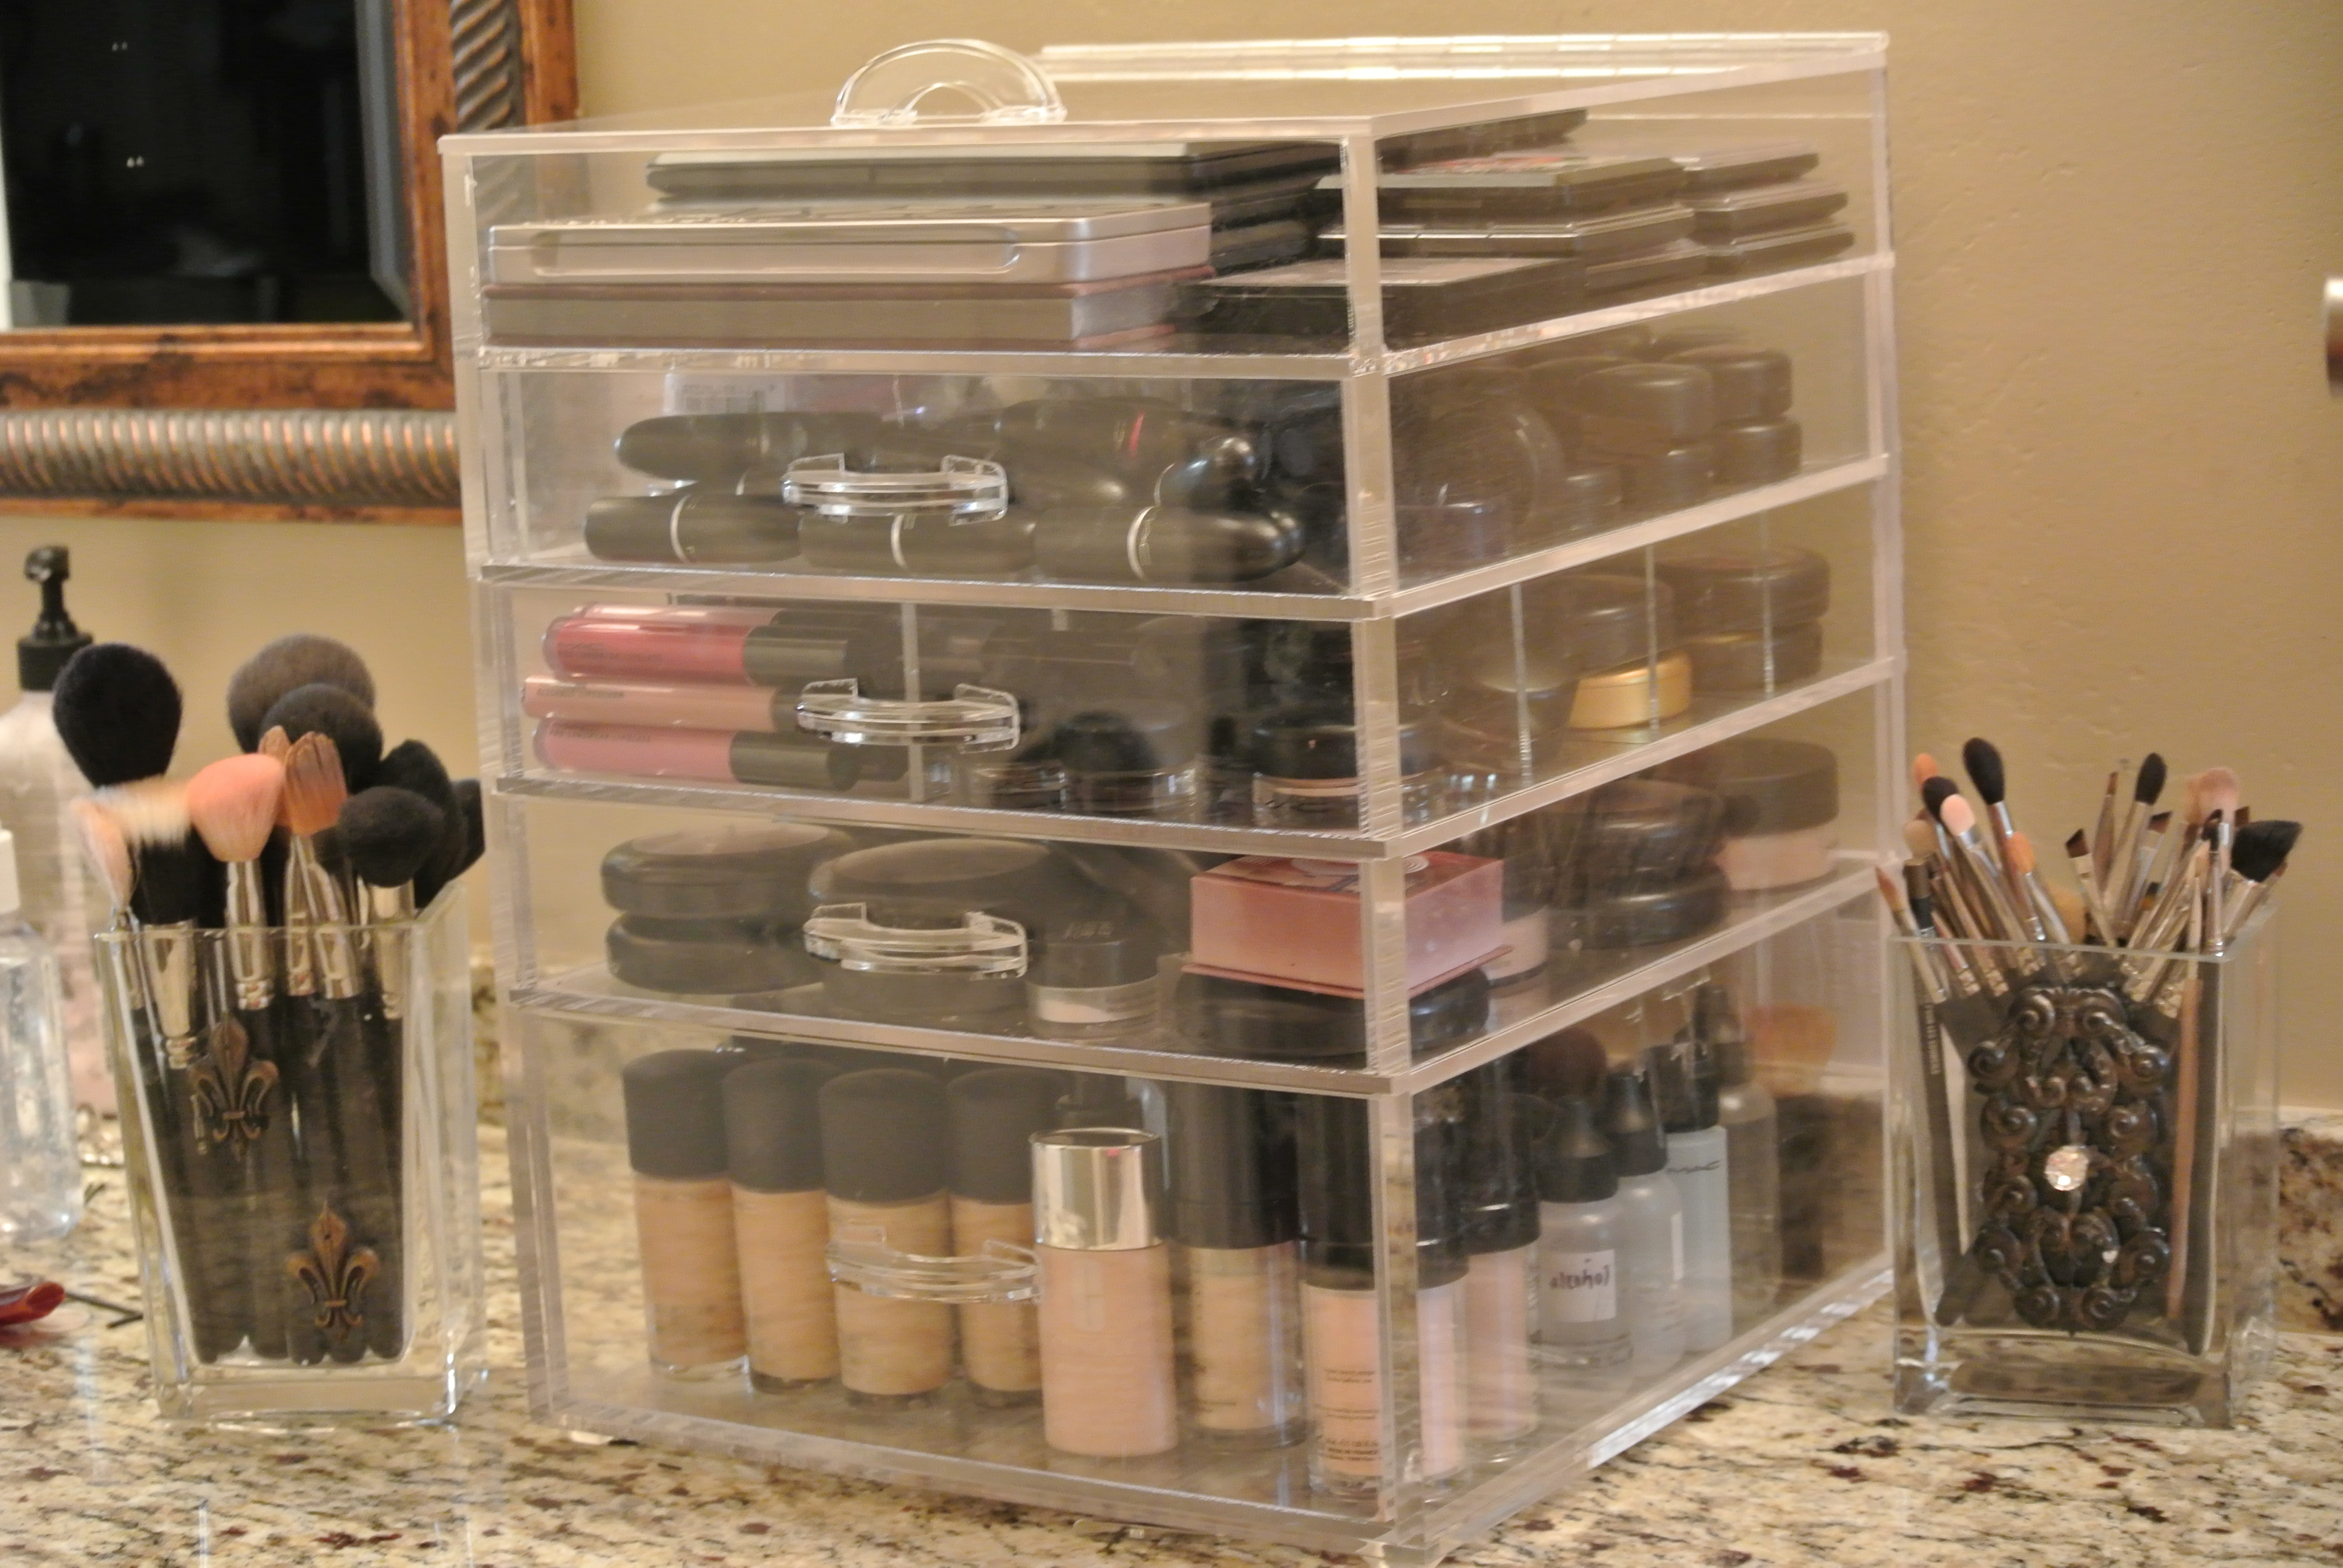 kim kardashian makeup organizer where to clear acrylic the absolute must have makeup u2026 & kim kardashian makeup organizer in her bathroom | My Web Value